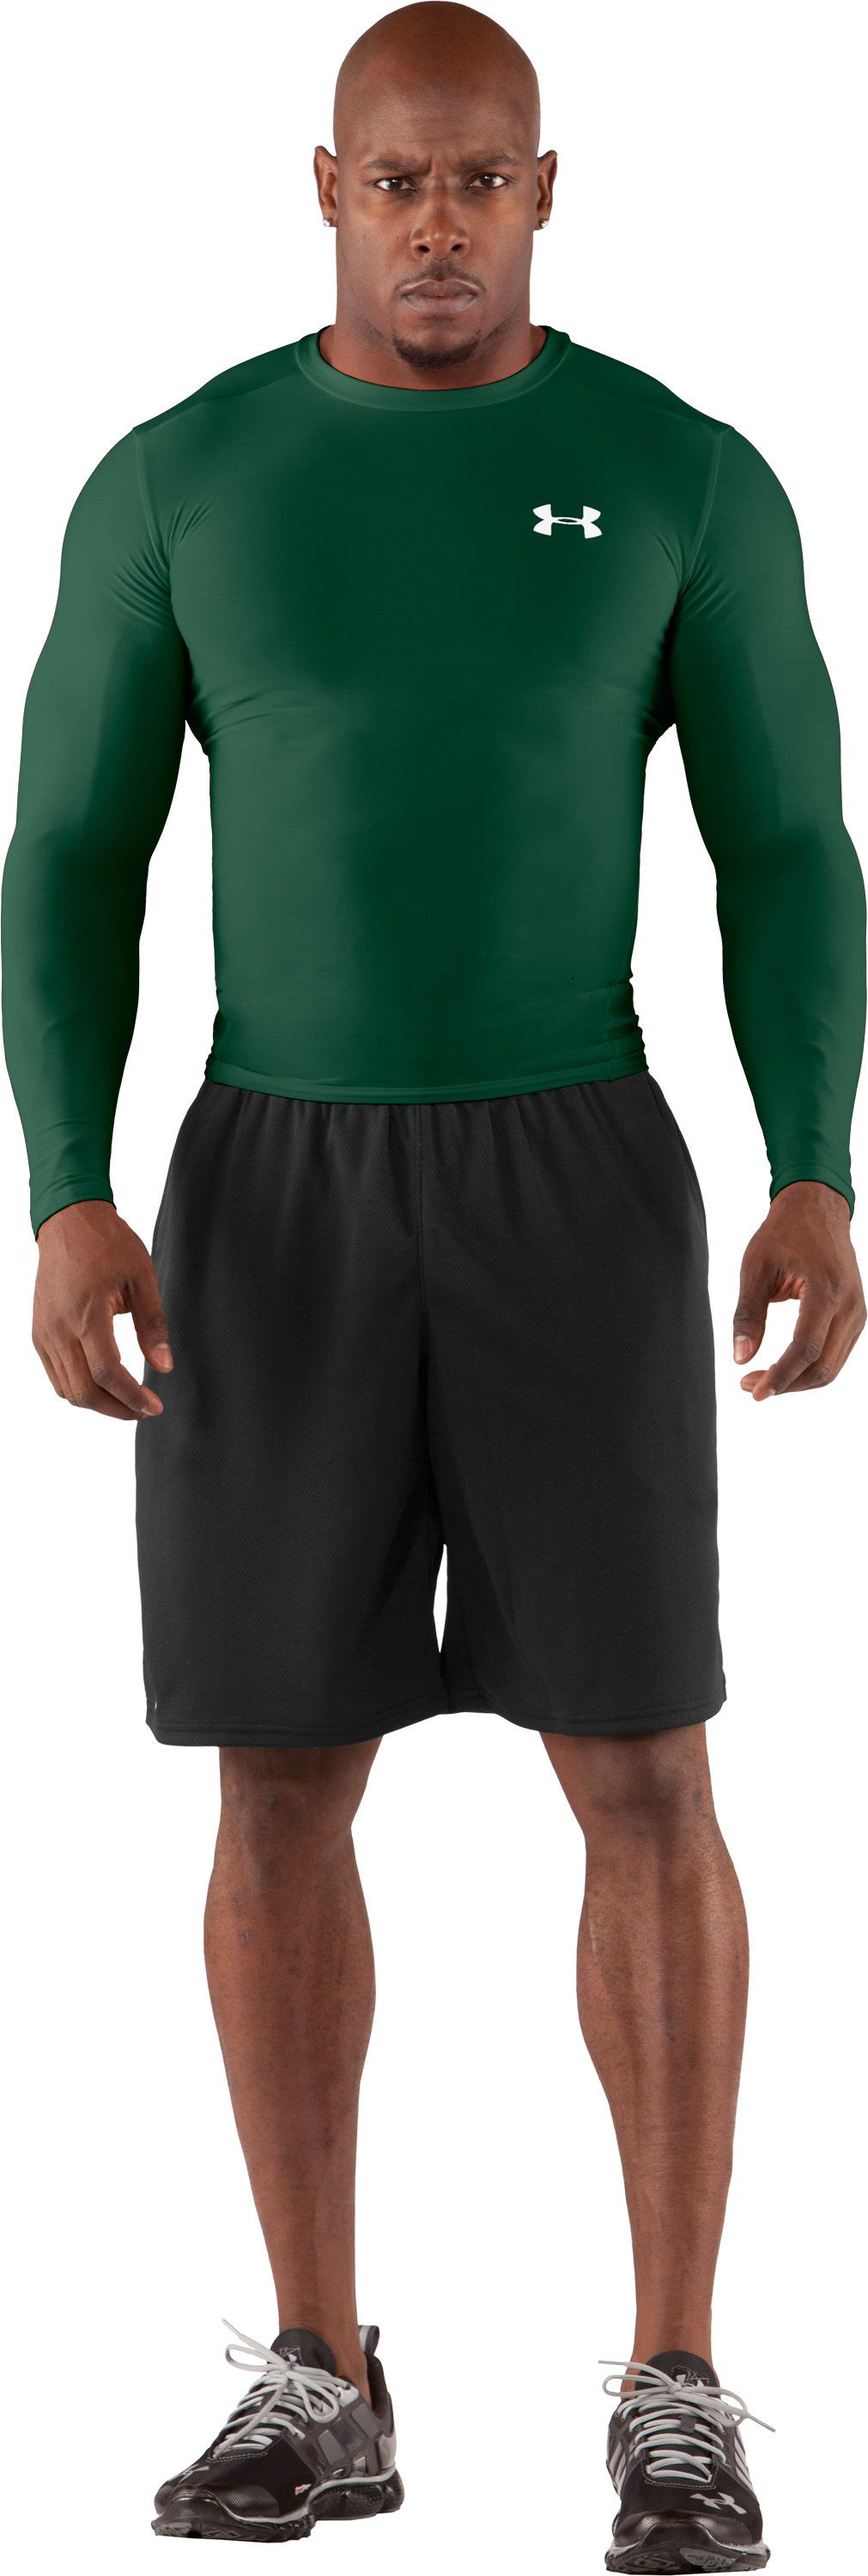 Men's HeatGear® Compression Long Sleeve T-Shirt, Forest Green, Front